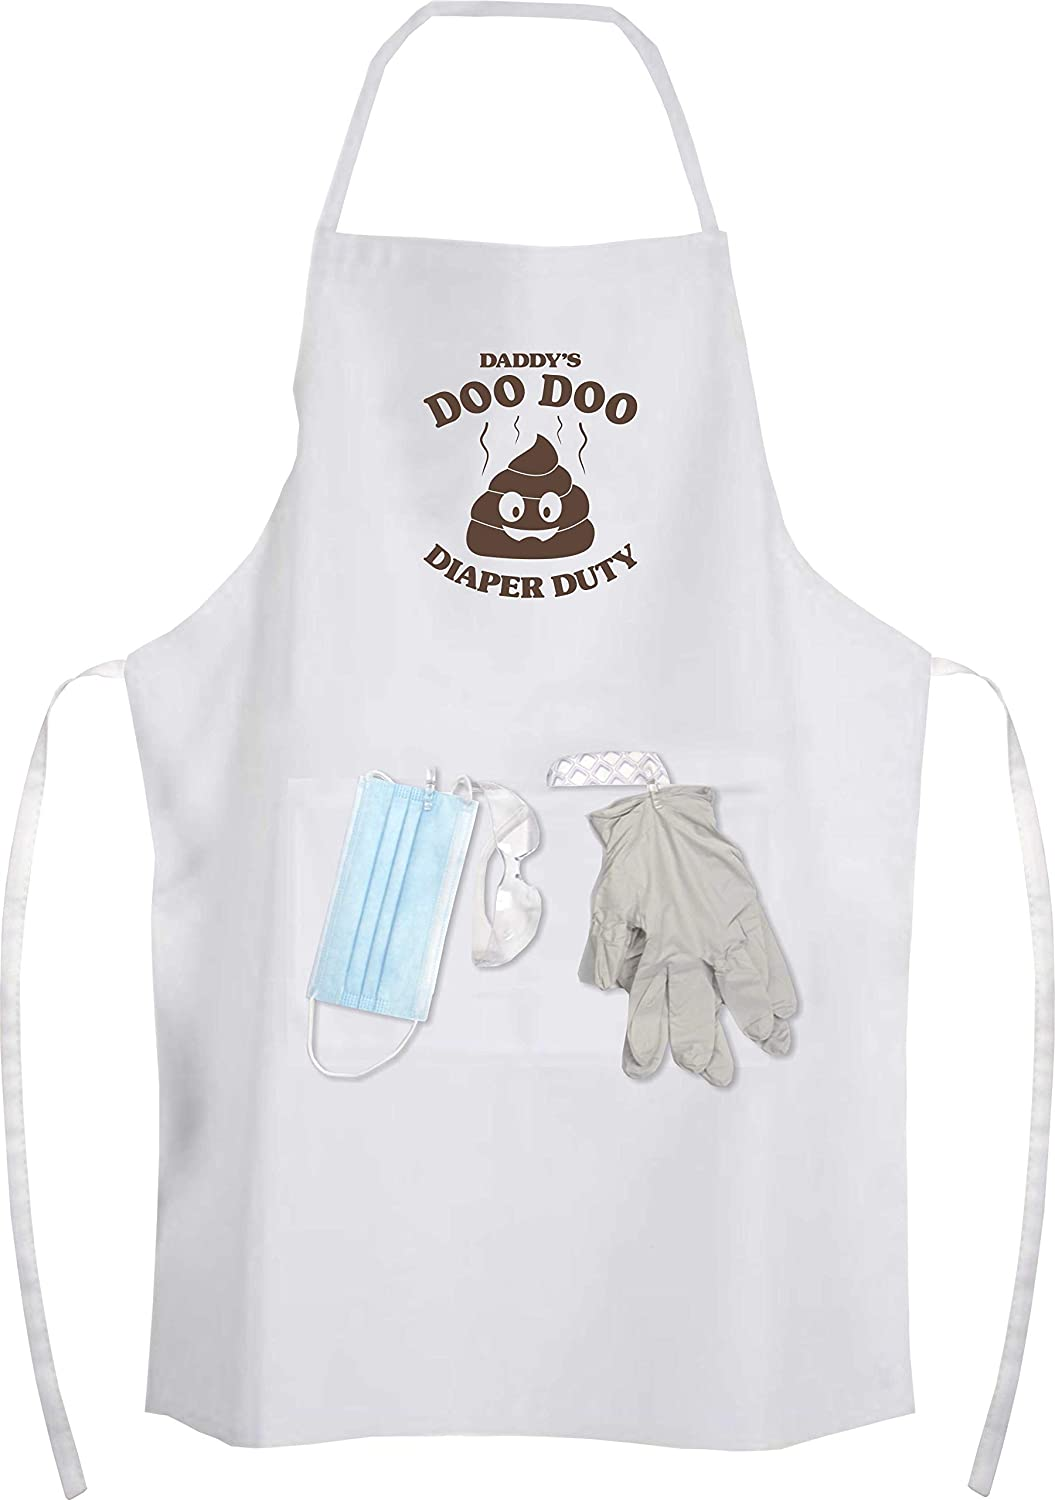 Daddy's Doo Doo Diaper Duty Apron Kit - Gag Gifts for The New Dad, Perfect Baby Shower Gift for Dad, Fun New Unique Father's Day Gift idea Suite 925 Design DD-001